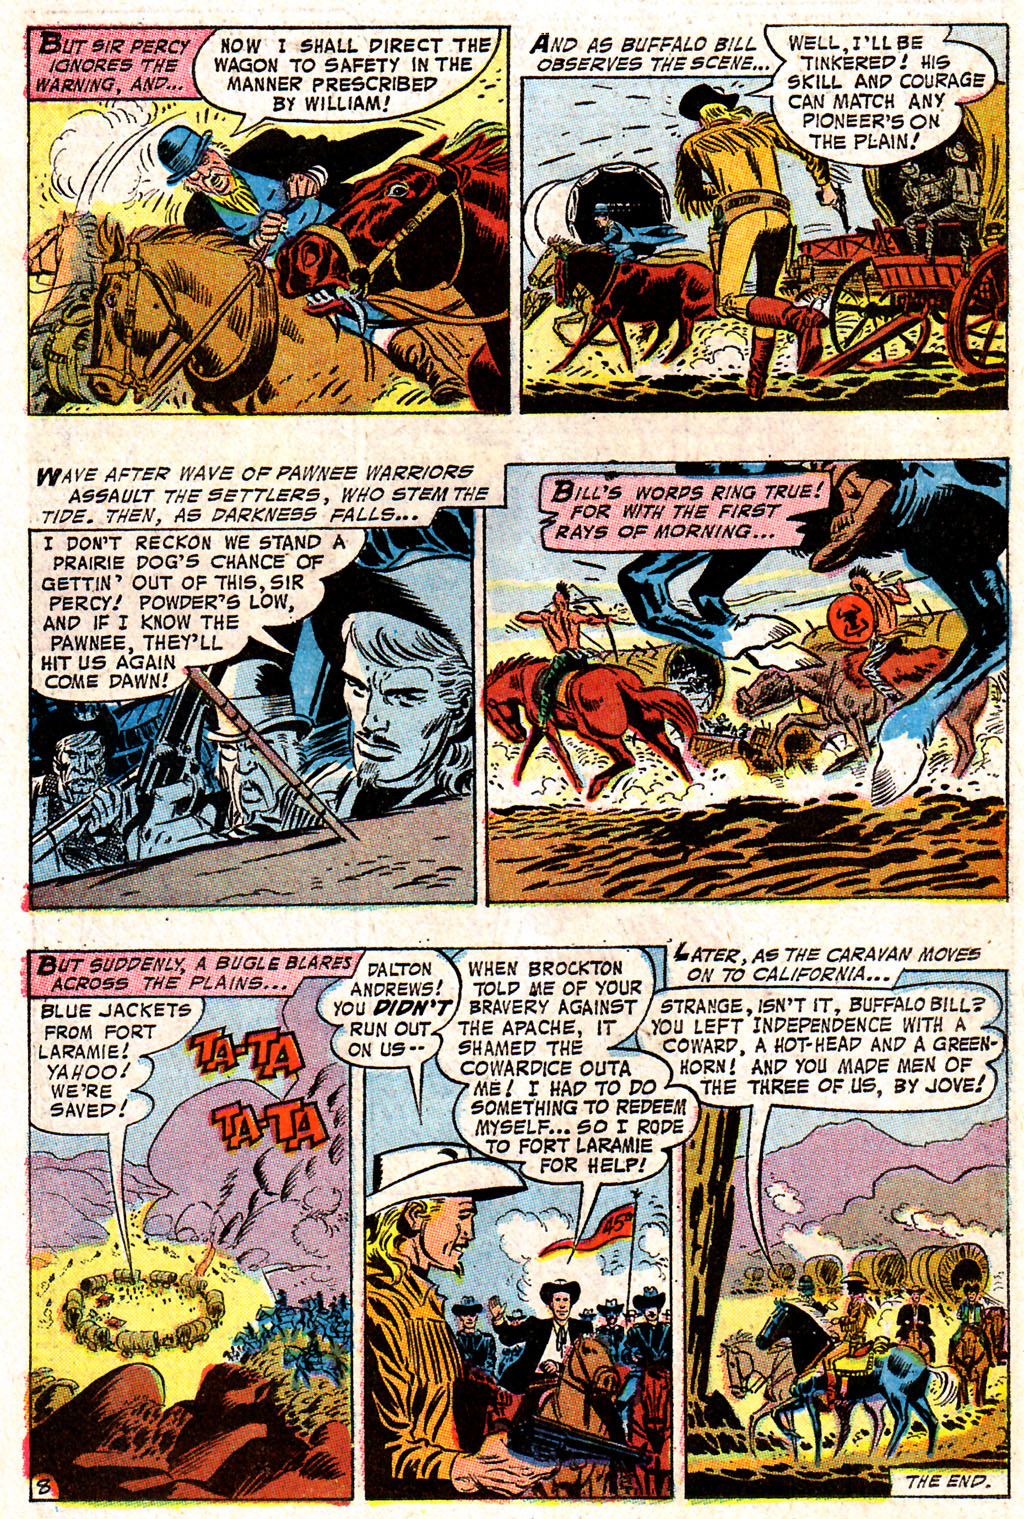 Read online All-Star Western (1970) comic -  Issue #7 - 36